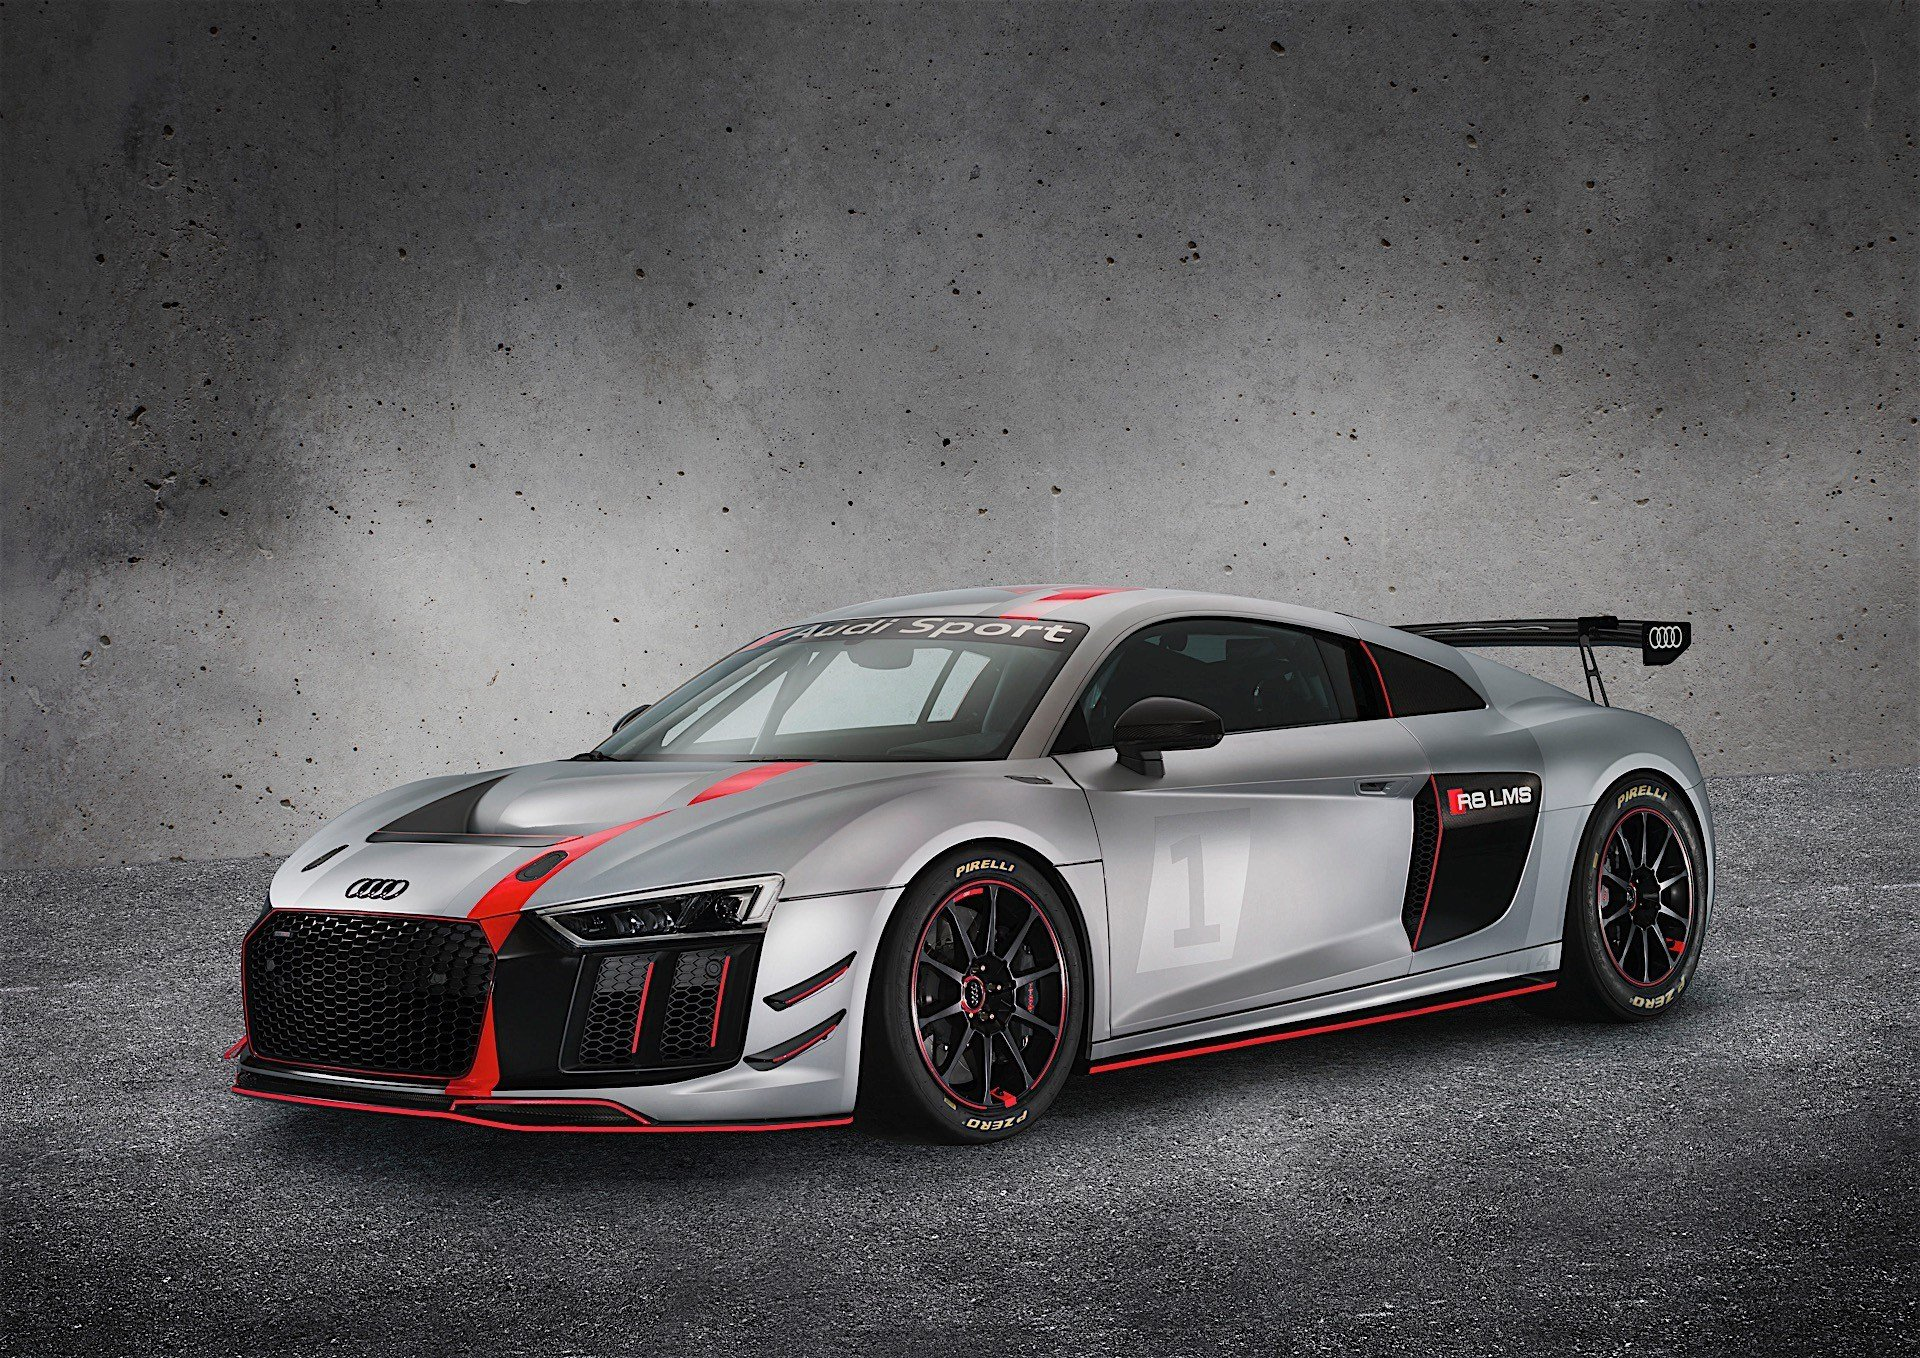 Latest 2017 Audi R8 Gt4 Unveiled It S The Race Version That S Free Download